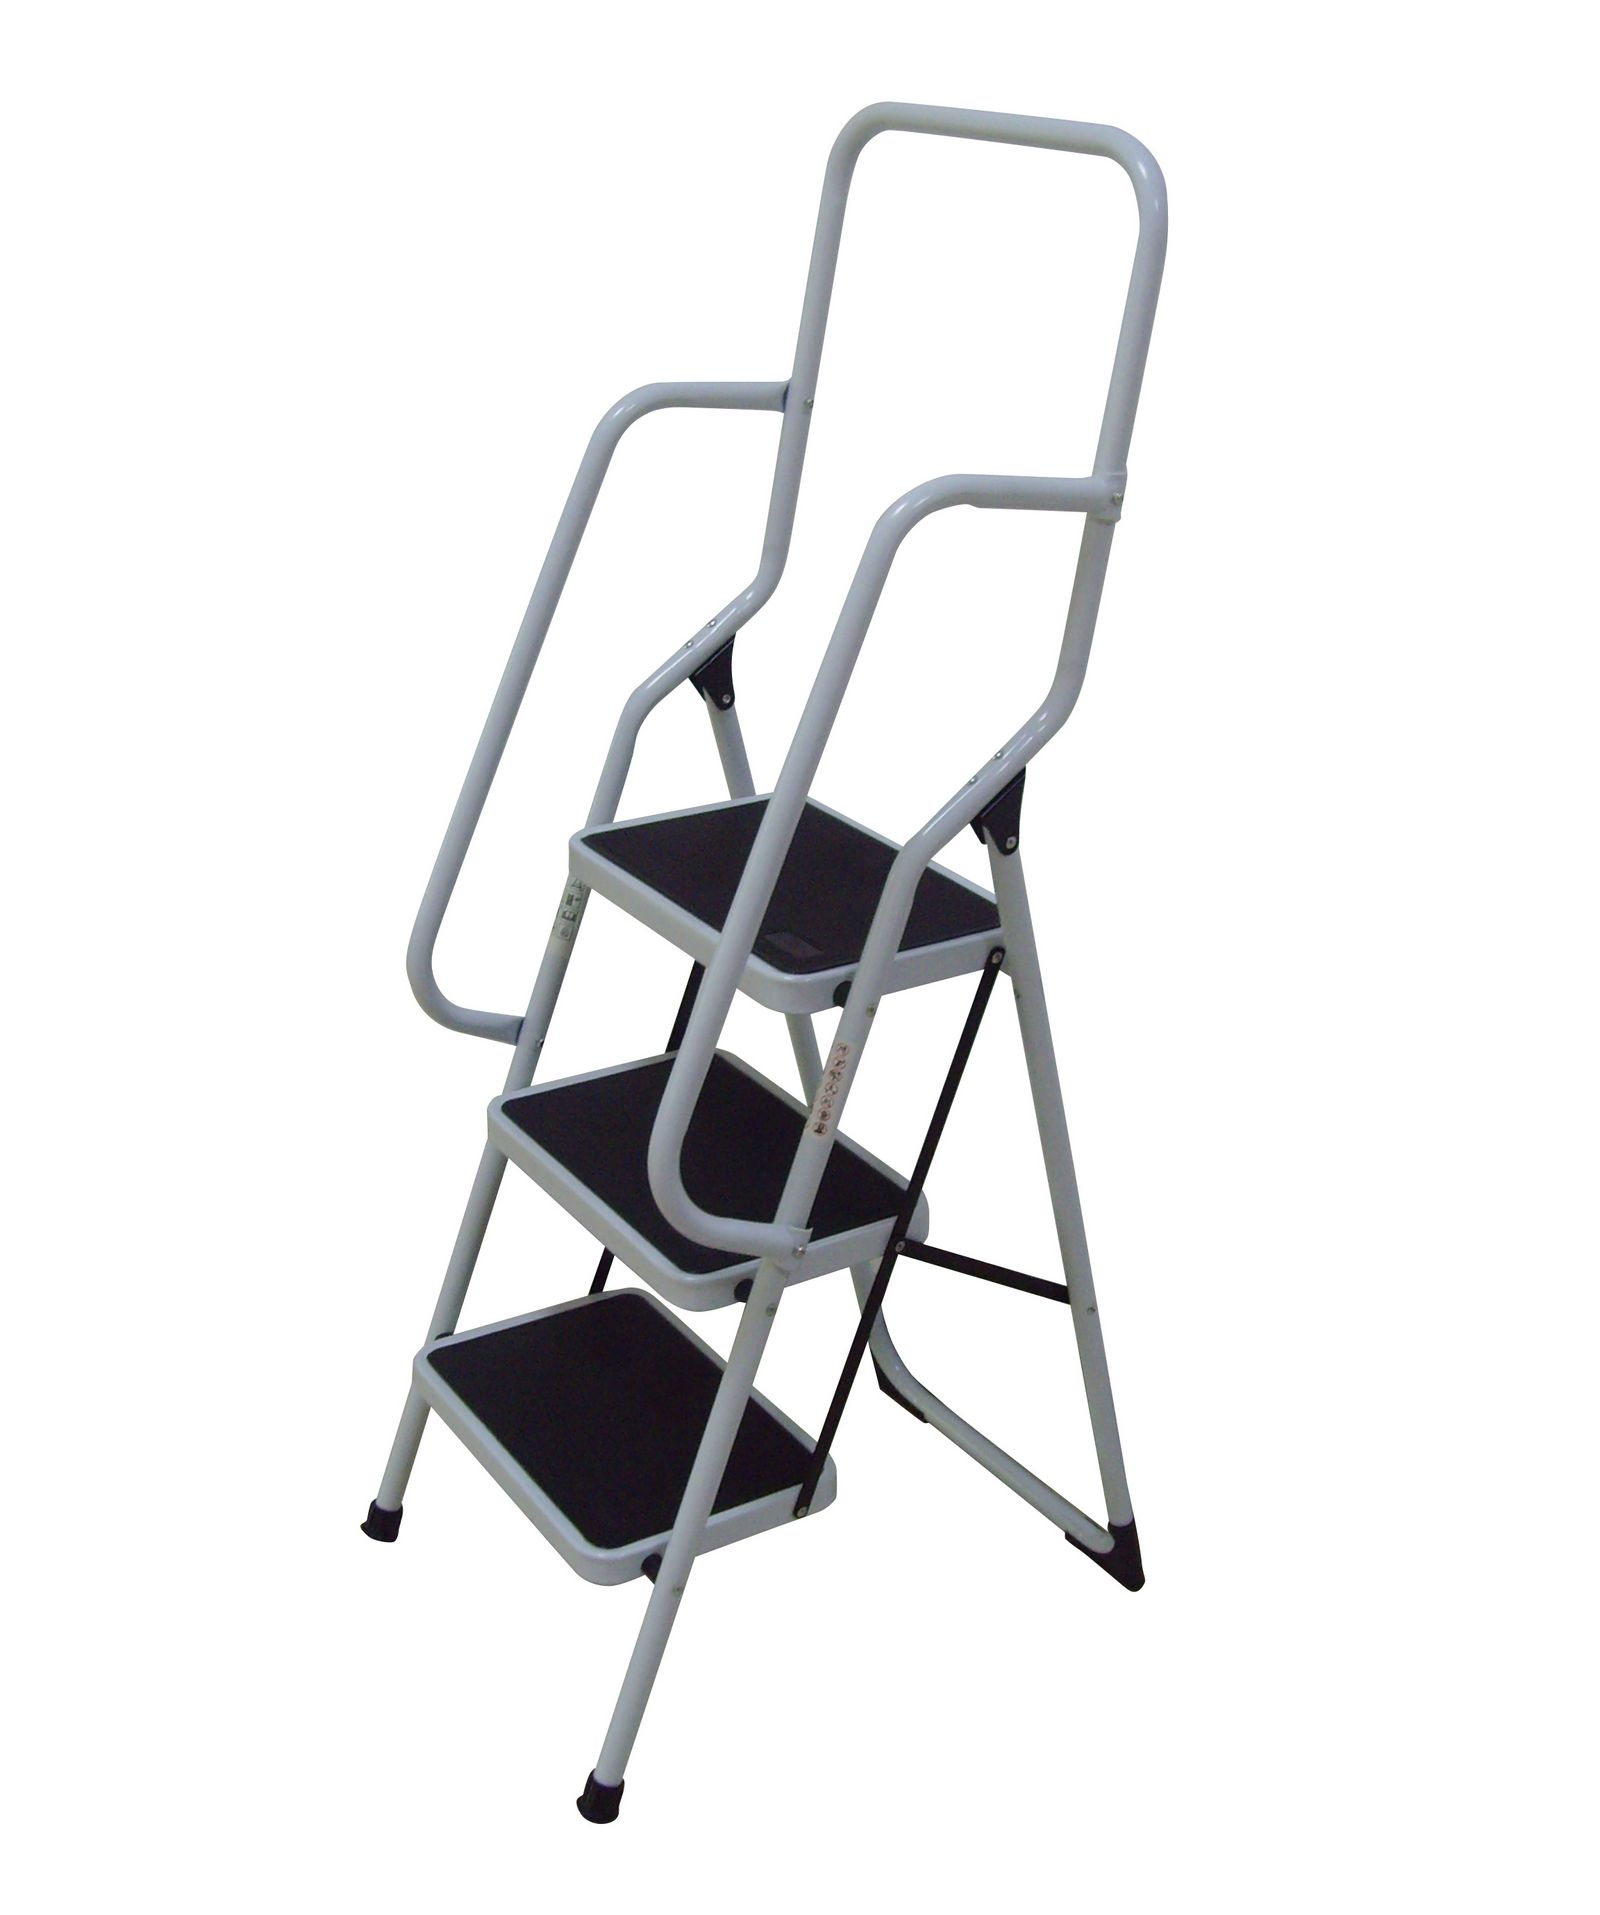 Foldable Non Slip 2 3 4 Step Steel Ladder tread Stepladder Safety ...